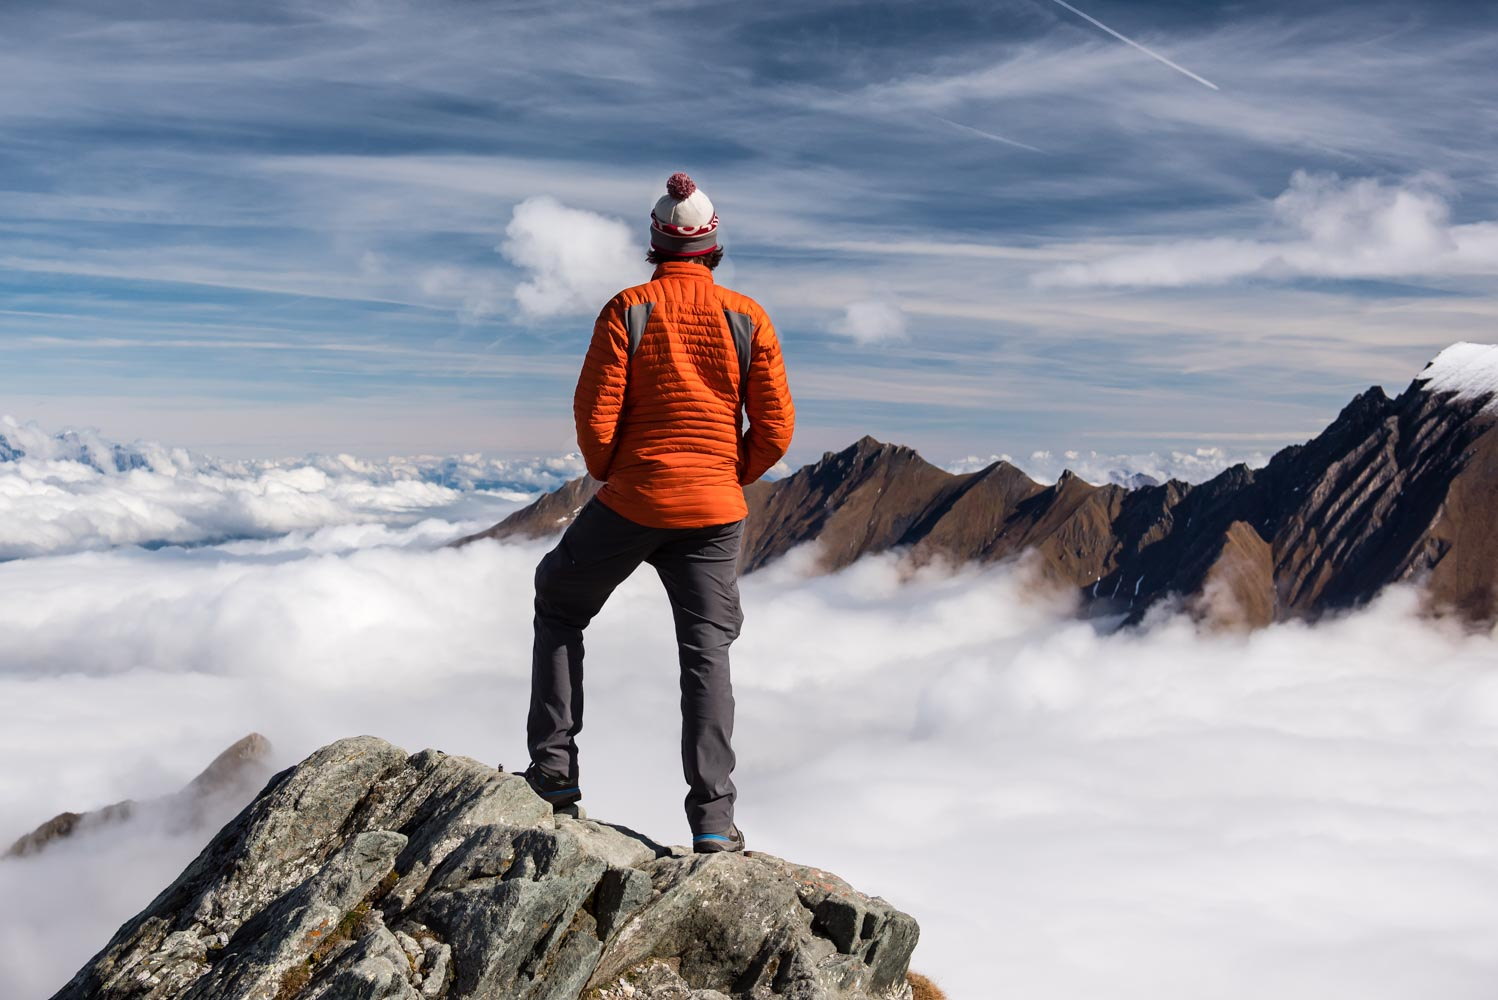 Standing above the clouds!